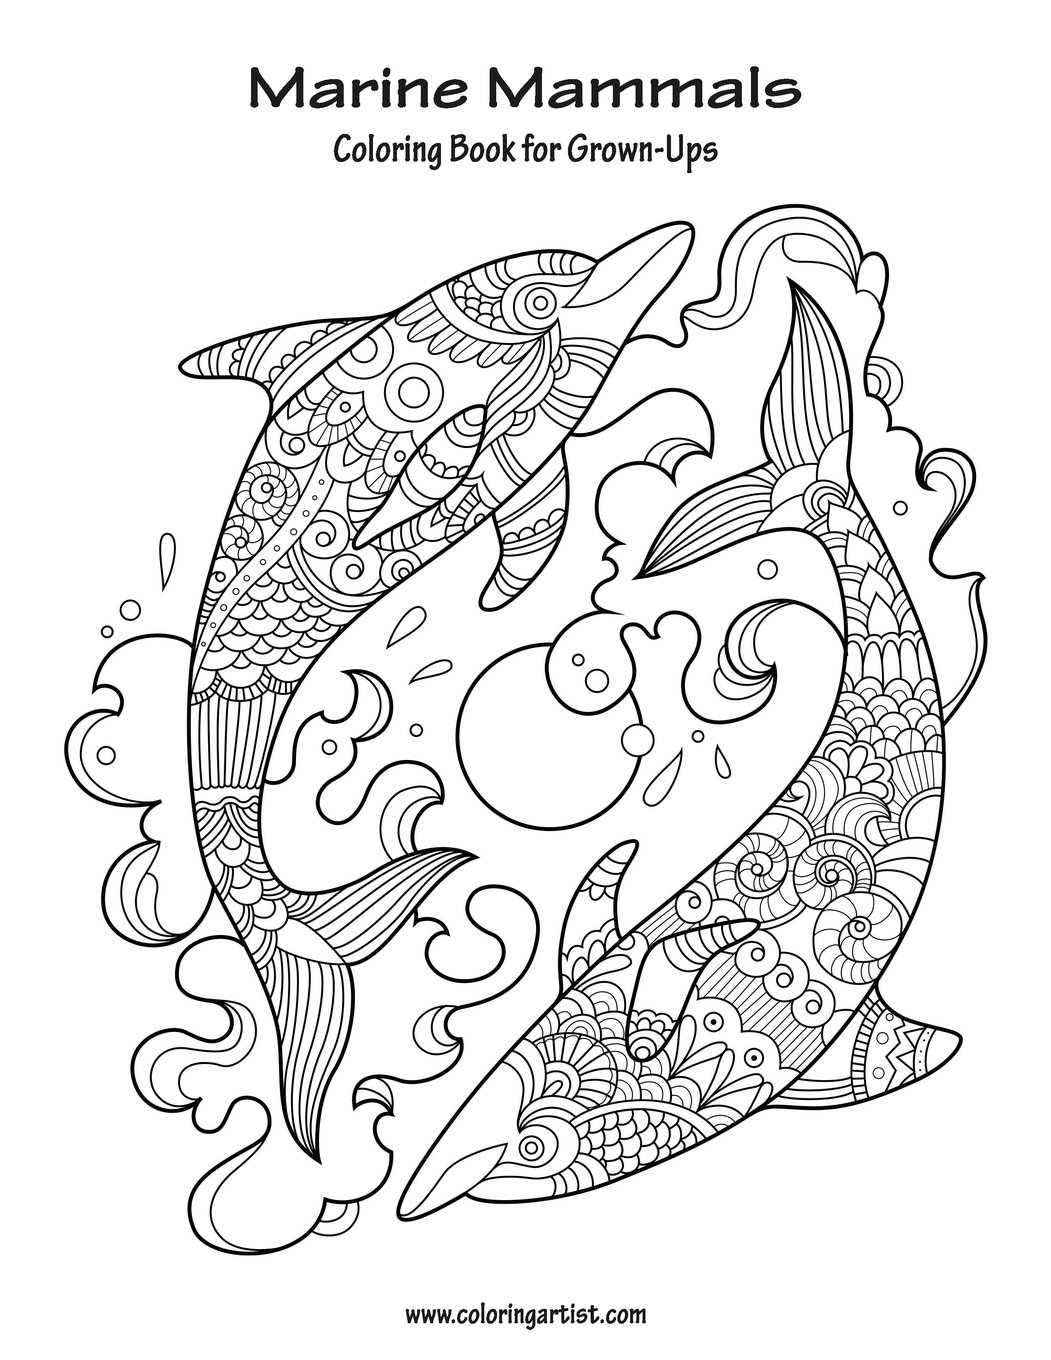 amazoncom marine mammals coloring book for grown ups 1 volume 1 9781530942893 nick snels books - Coloring Book For Grown Ups